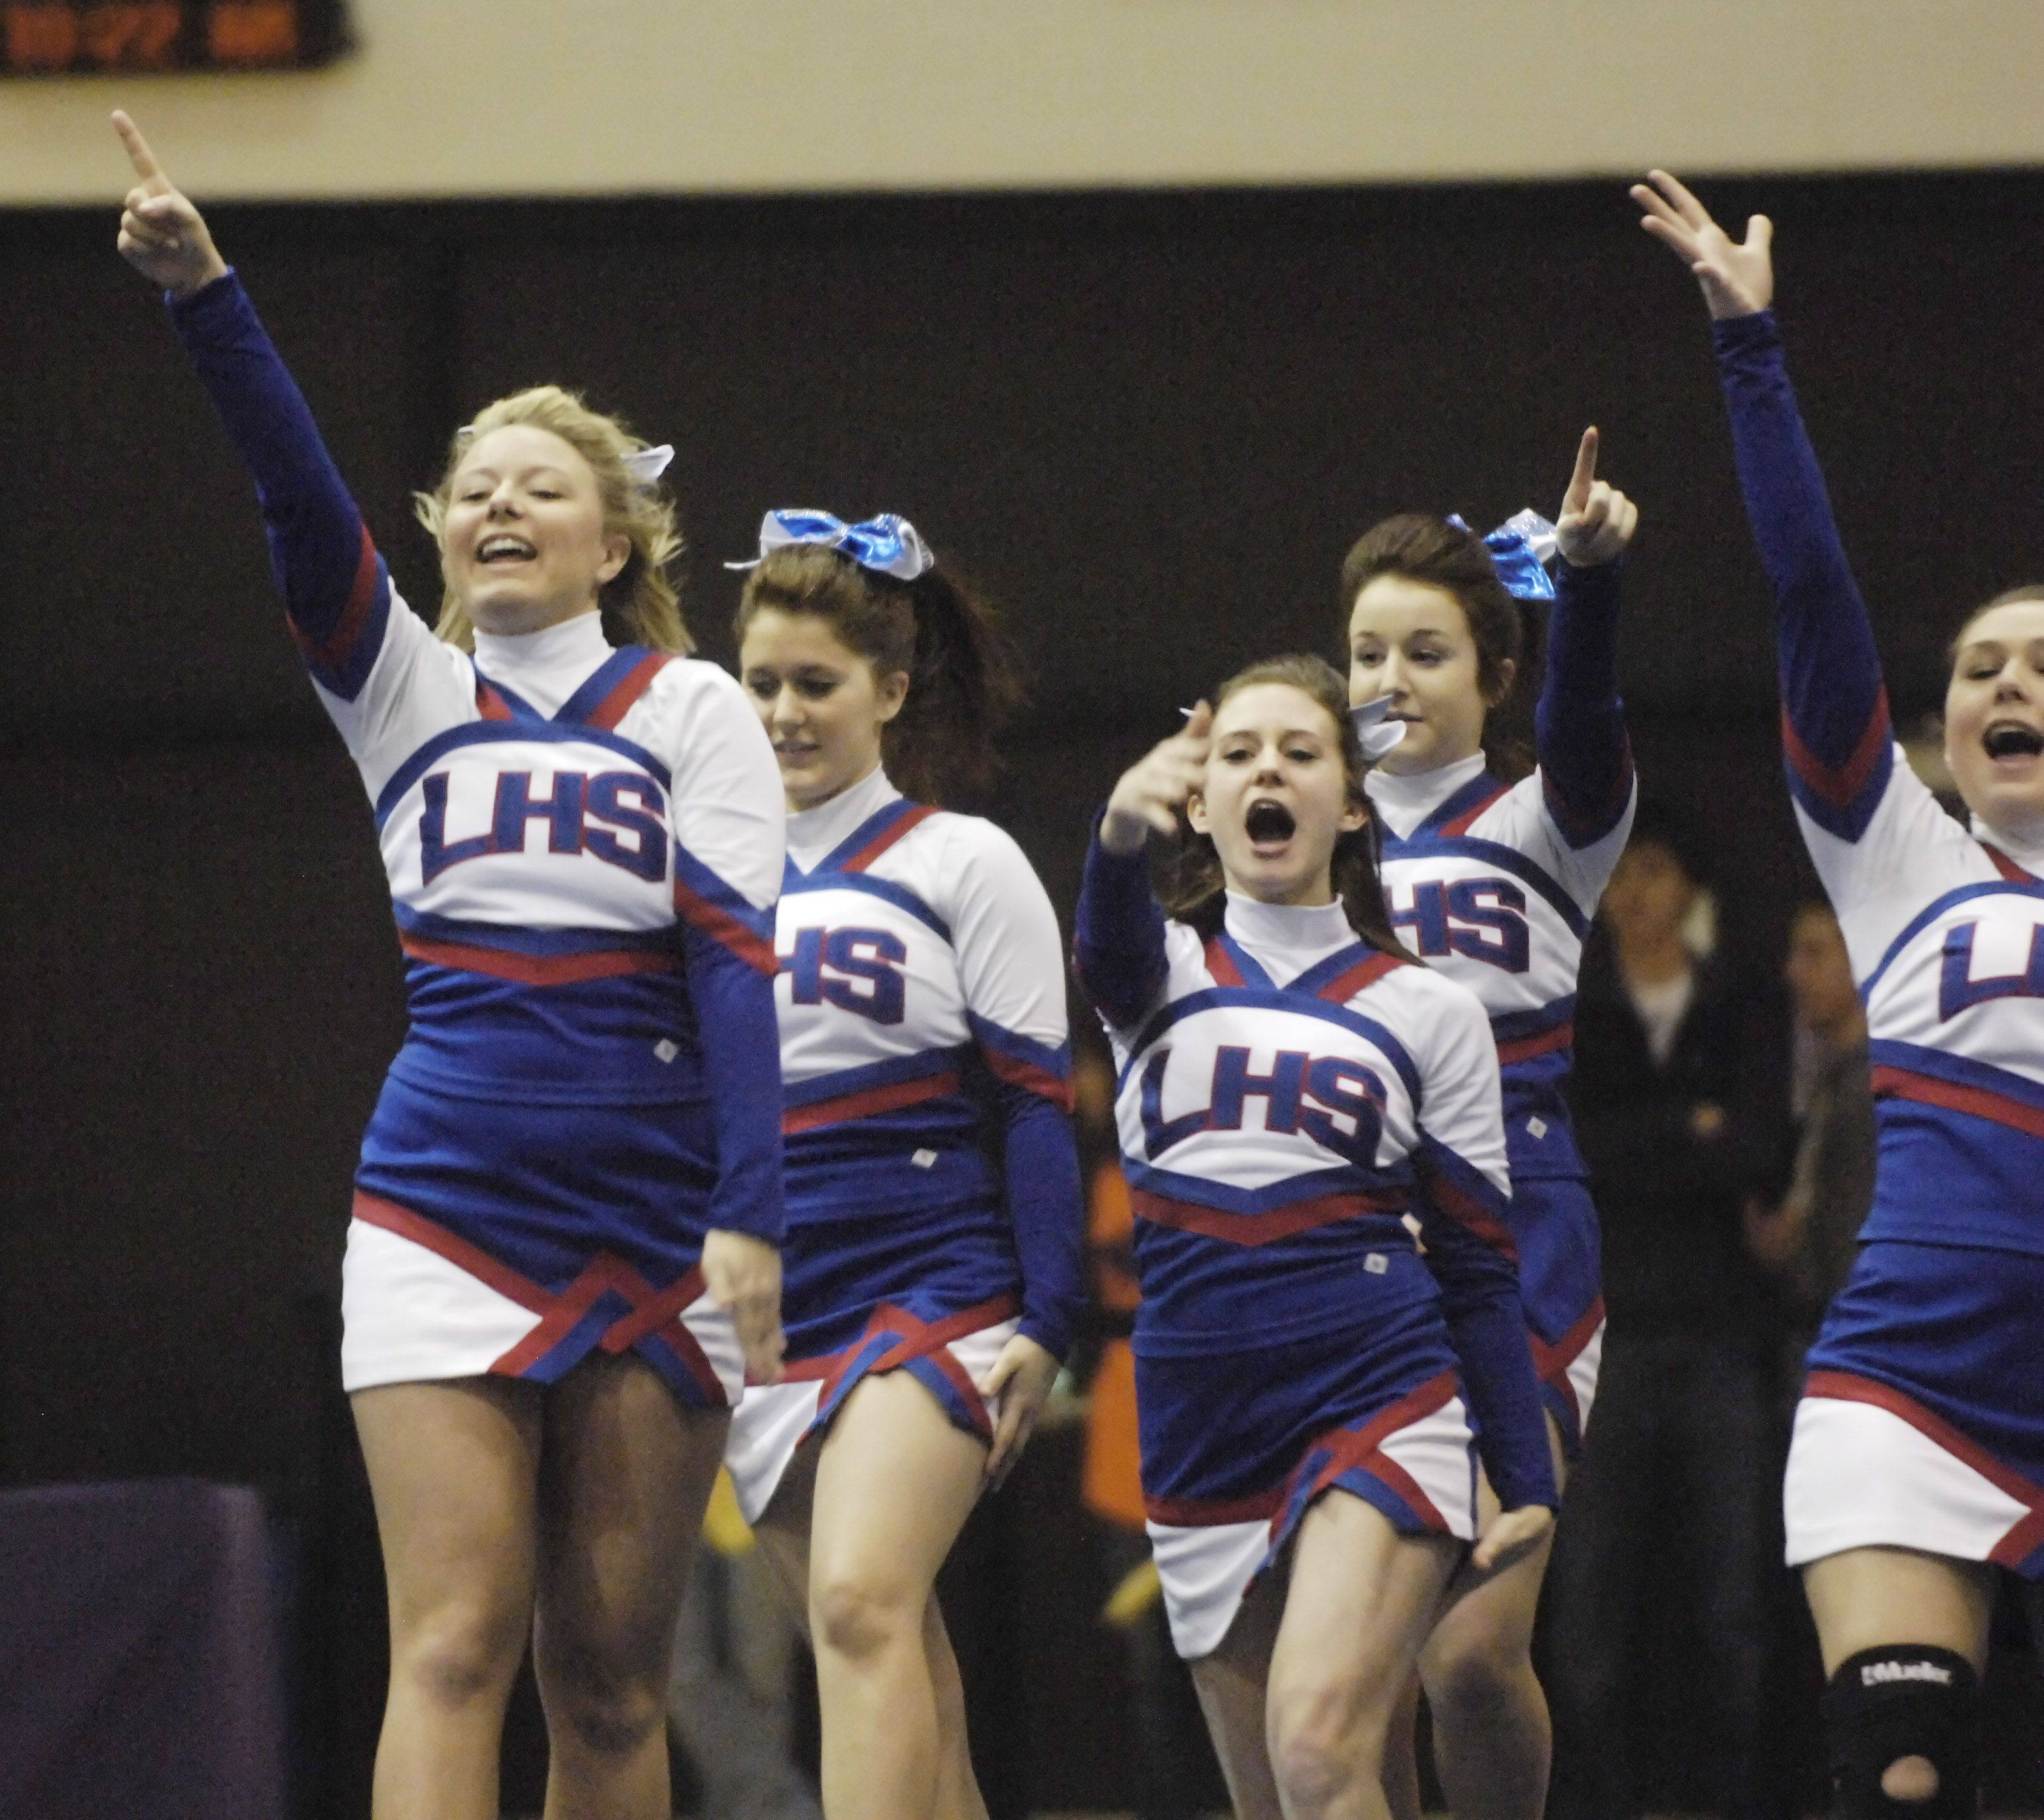 Larkin High School competes during Saturday's cheerleading sectional hosted by Rolling Meadows High School.